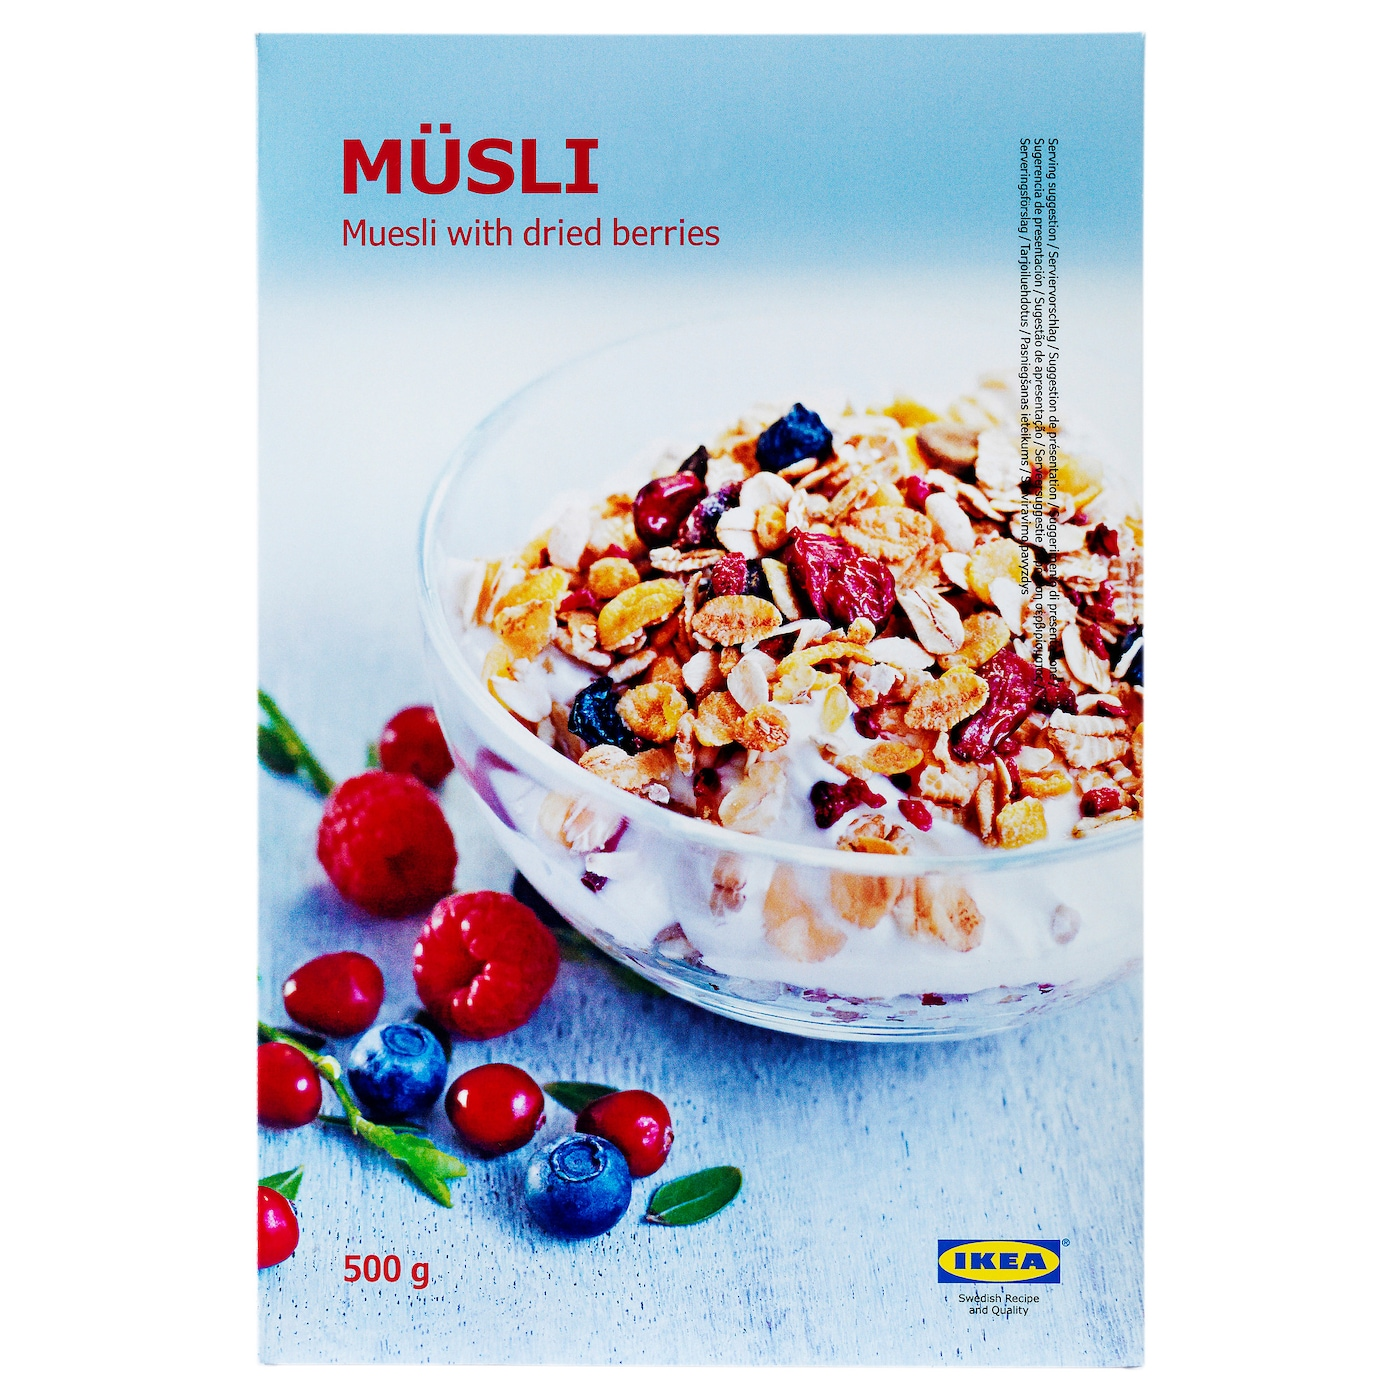 IKEA MÜSLI muesli with berries